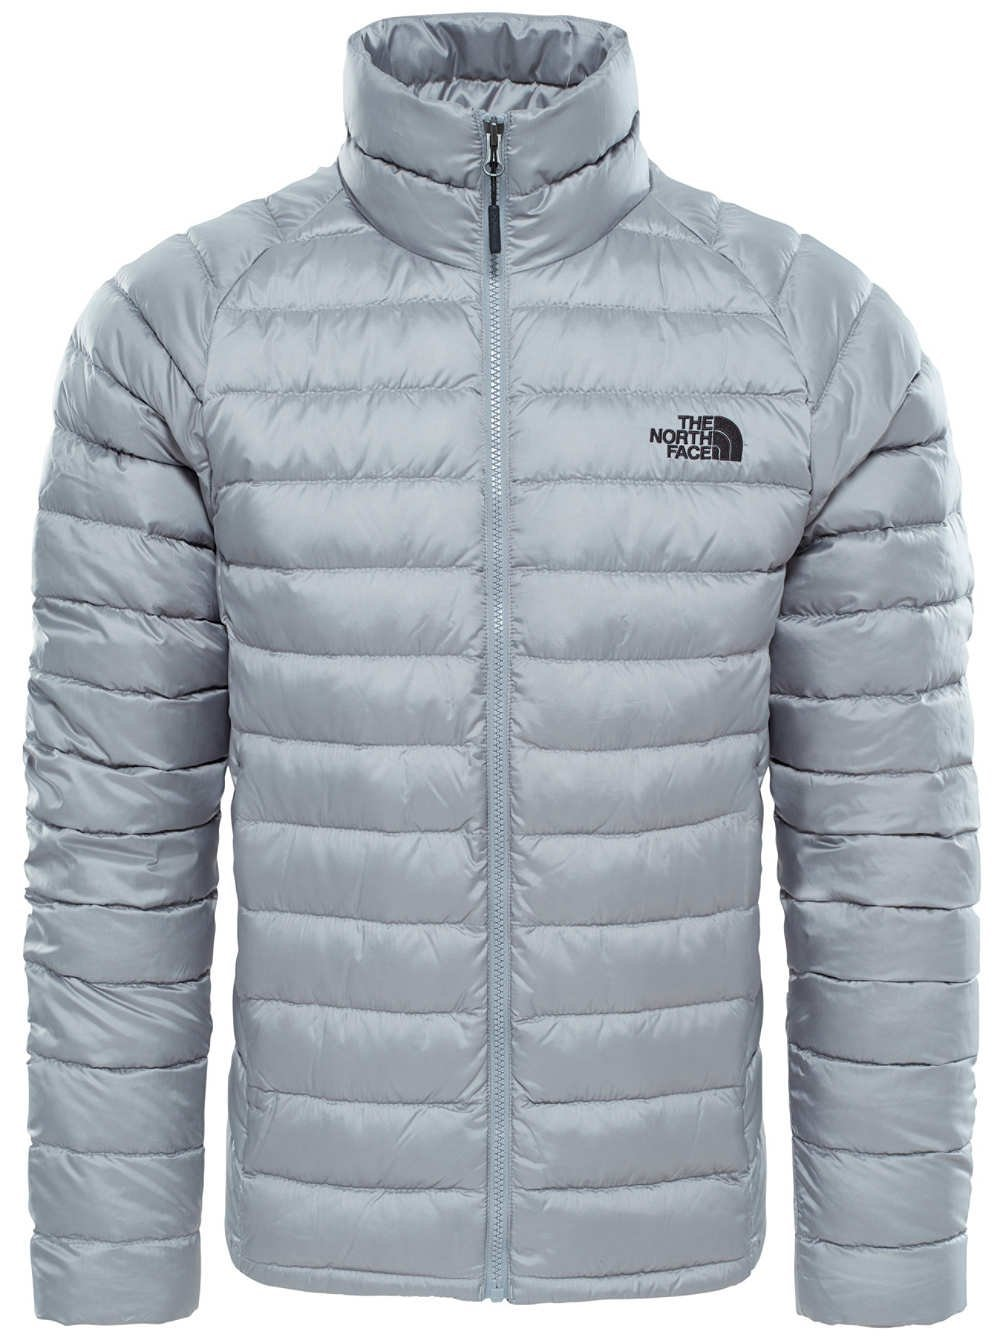 71c7b3334933 THE NORTH FACE T939n5